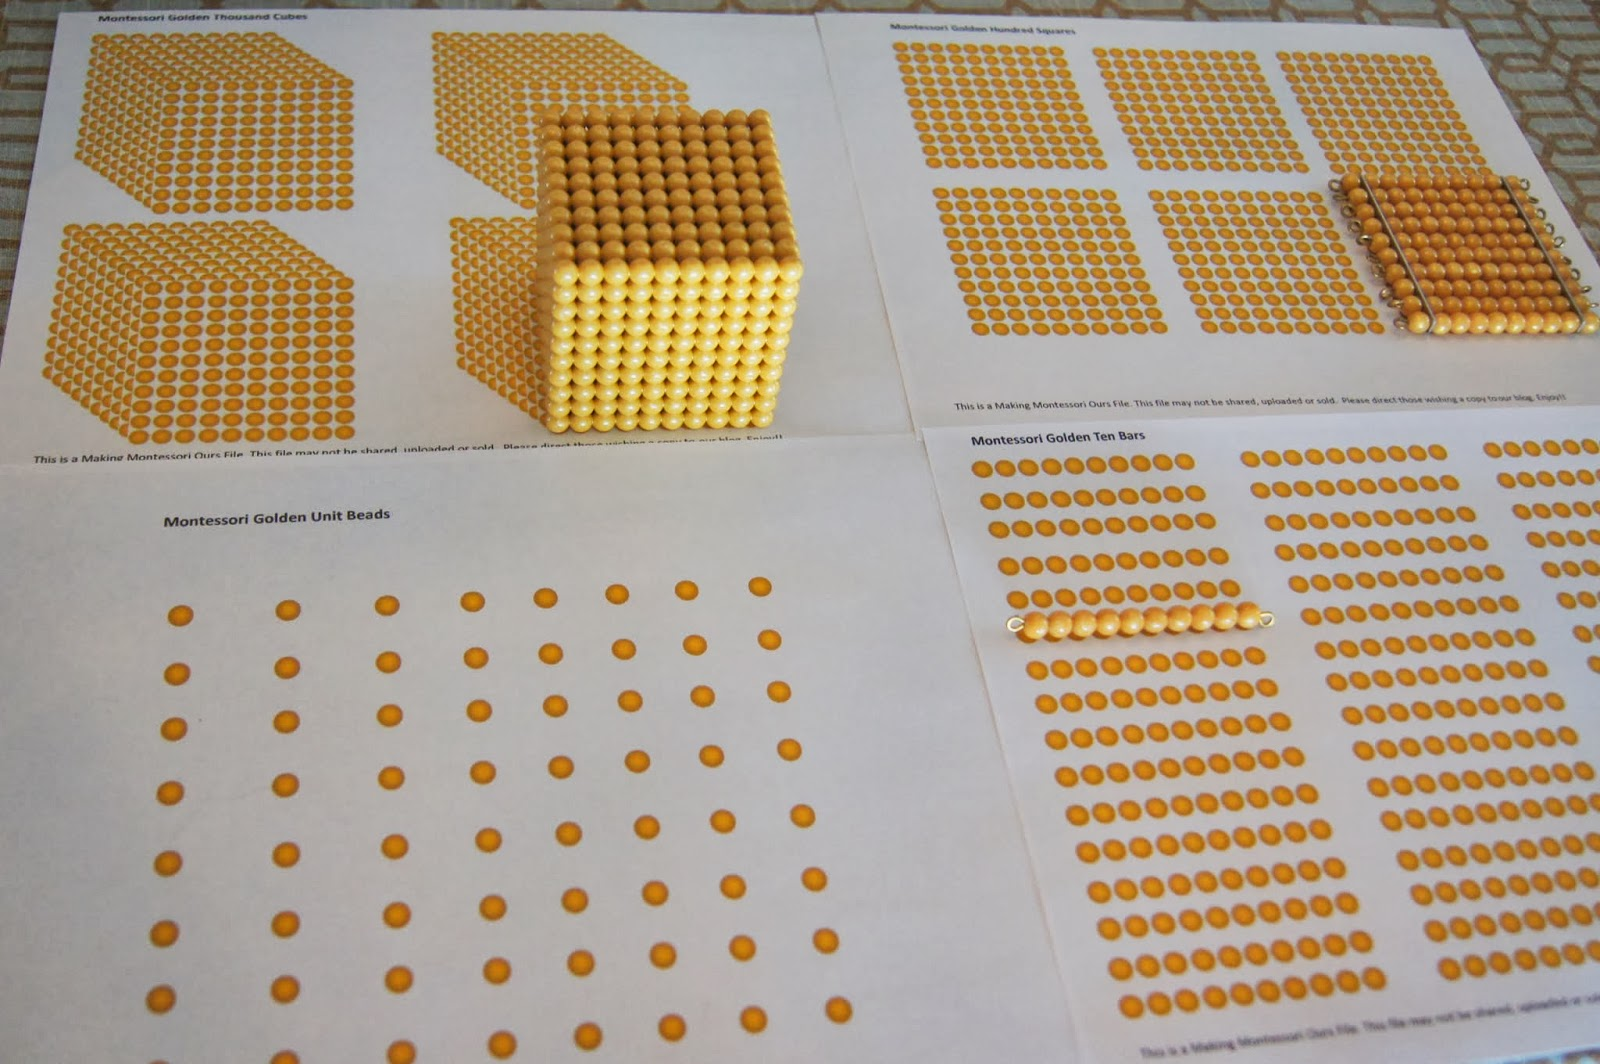 montessori golden bead complete materials printable